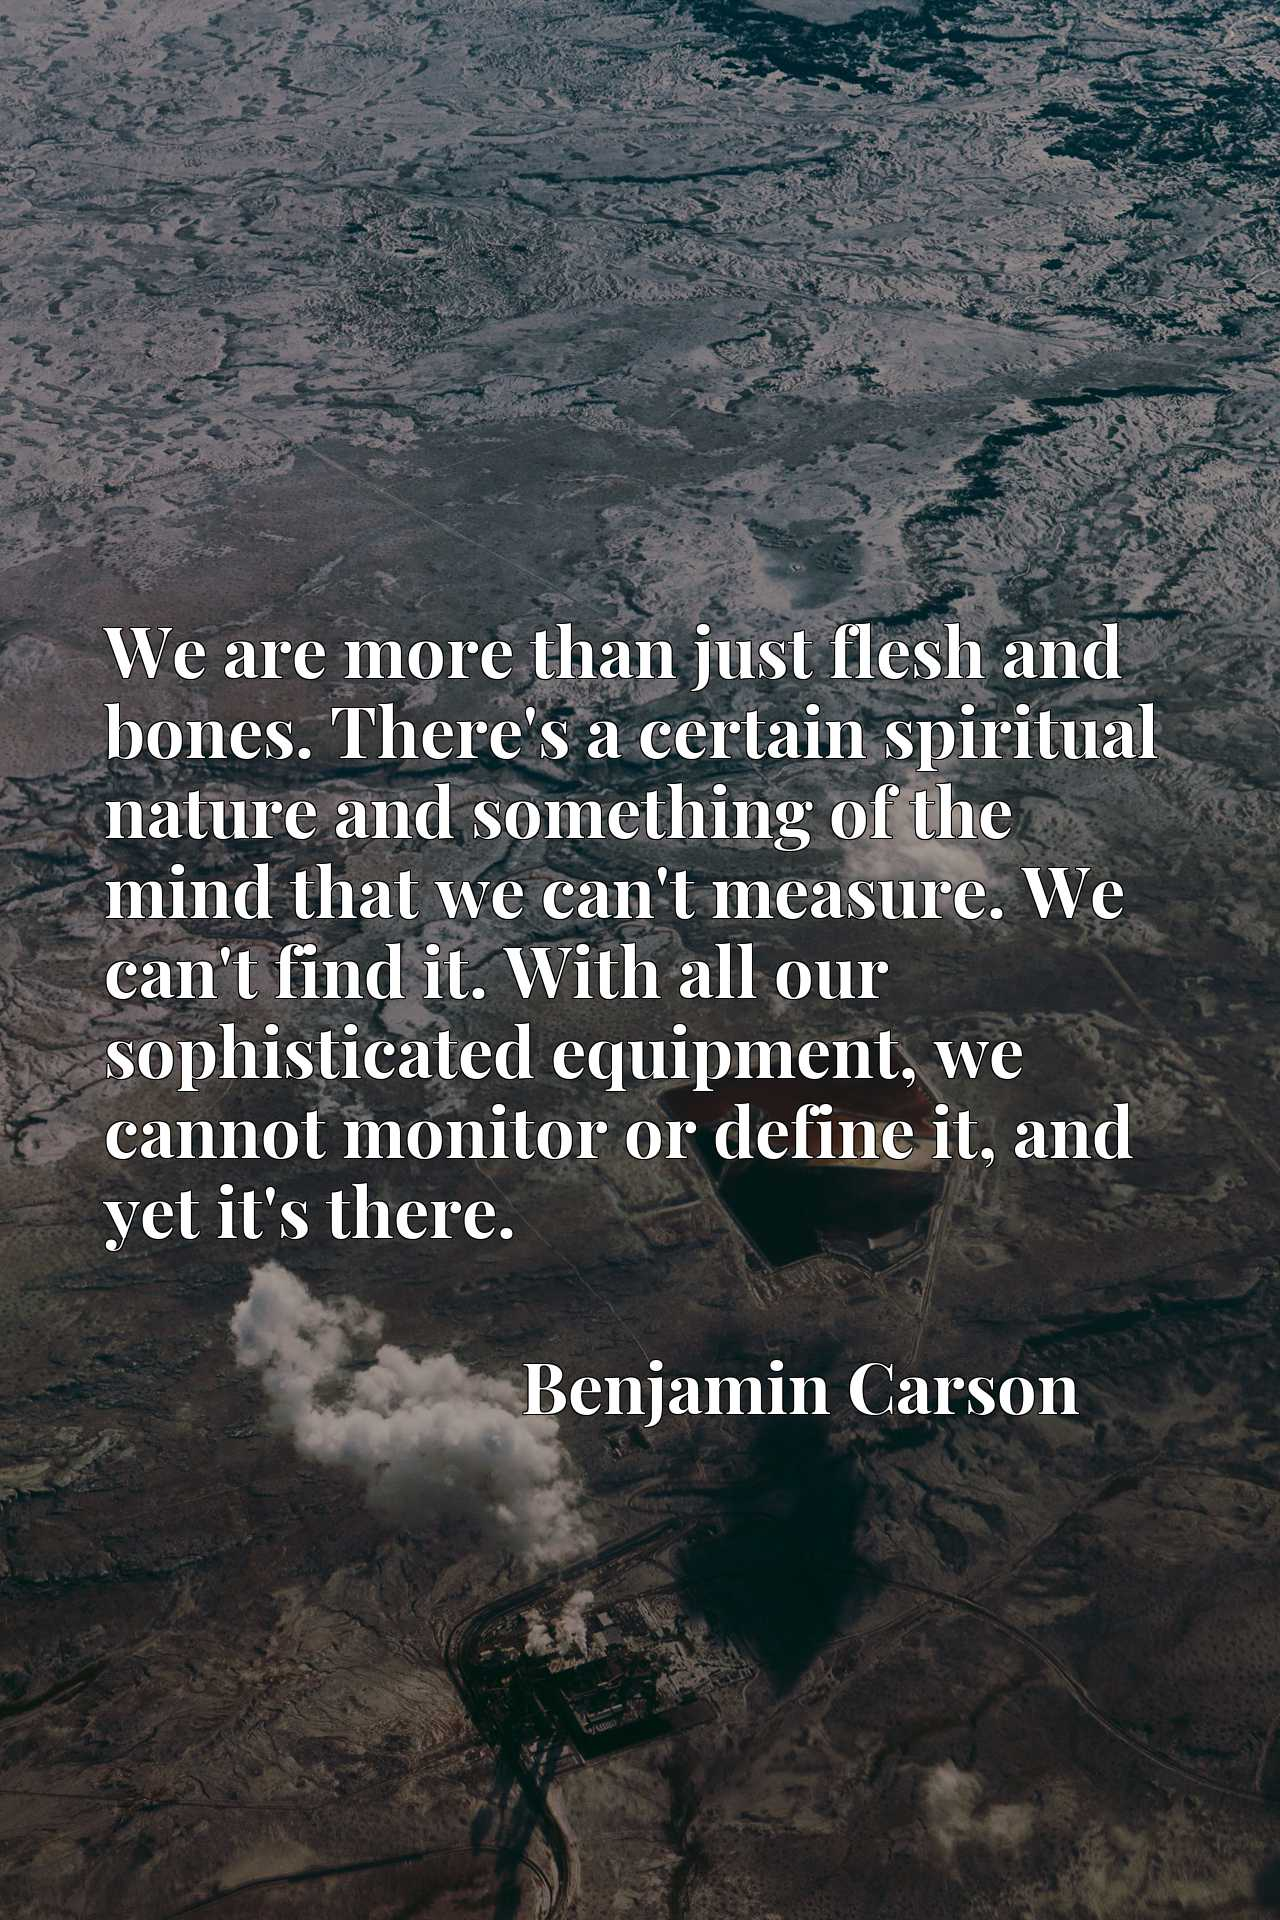 Quote Picture :We are more than just flesh and bones. There's a certain spiritual nature and something of the mind that we can't measure. We can't find it. With all our sophisticated equipment, we cannot monitor or define it, and yet it's there.